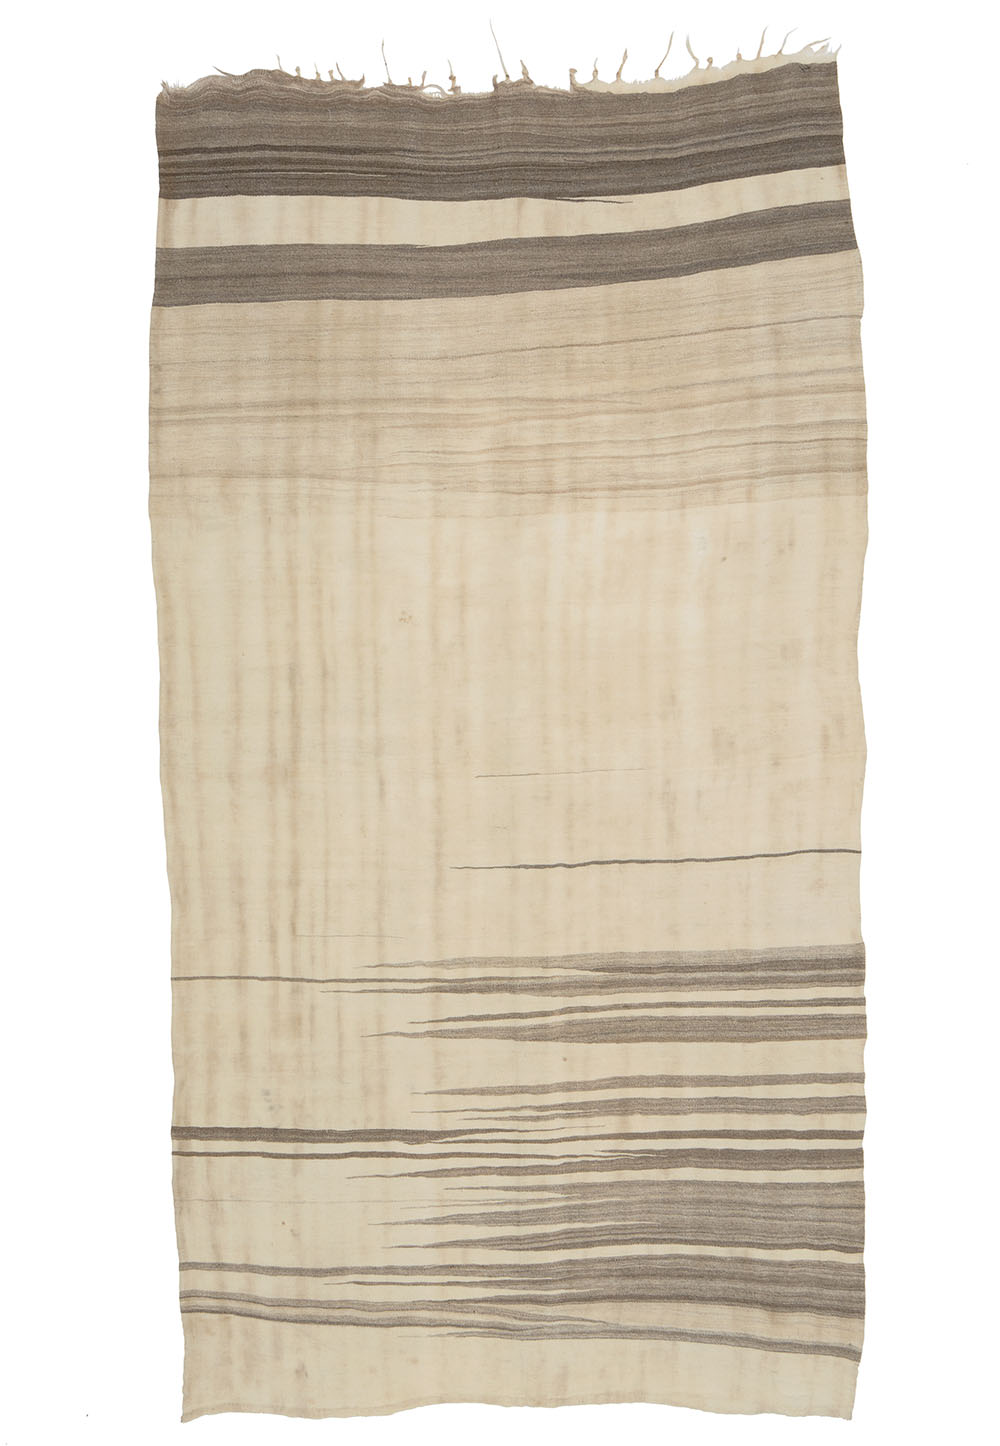 "Berber haik from the Mejjat tribe Anti Atlas, southern Morocco, second half 20th century. 1.10 x 2.20 m (3' 7"" x 7' 2""). Alexandra Sachs collection.  In this textile the weaver has concentrated on a design that does not rely on colour to create a distinctive strong, graphic quality. The focus is on the undyed wool in various shades and on the simplified pattern repertoire used in everyday garments of the Mejjat region. These aesthetic principles allow for an unadorned design resulting in an almost modern contemporary appearance. The open field, with stripes and peaks running across it, has an effect not unlike the diffuse watercolors of J. M. W. Turner, defining vague outlines of a horizon. An endless range of shades adds depth and vividness to the light background. One can say that the entire composition is a virtuoso play with levels of density. However, the essence of this textile lies in the pure wool, the formal austerity and the rustic 'worn over time' patina. This haik resembles the headscarfs of the Ait Abdellah, with their unmistakable minimalist compositions, of which the best examples feature black peaks in the dark section (HALI 120, p. 79). There could clearly be a connection, since the Ait Abdellah are not situated far away from the Mejjat tribe. Ultimately this haik is one of very few examples representing the zenith of its genre"